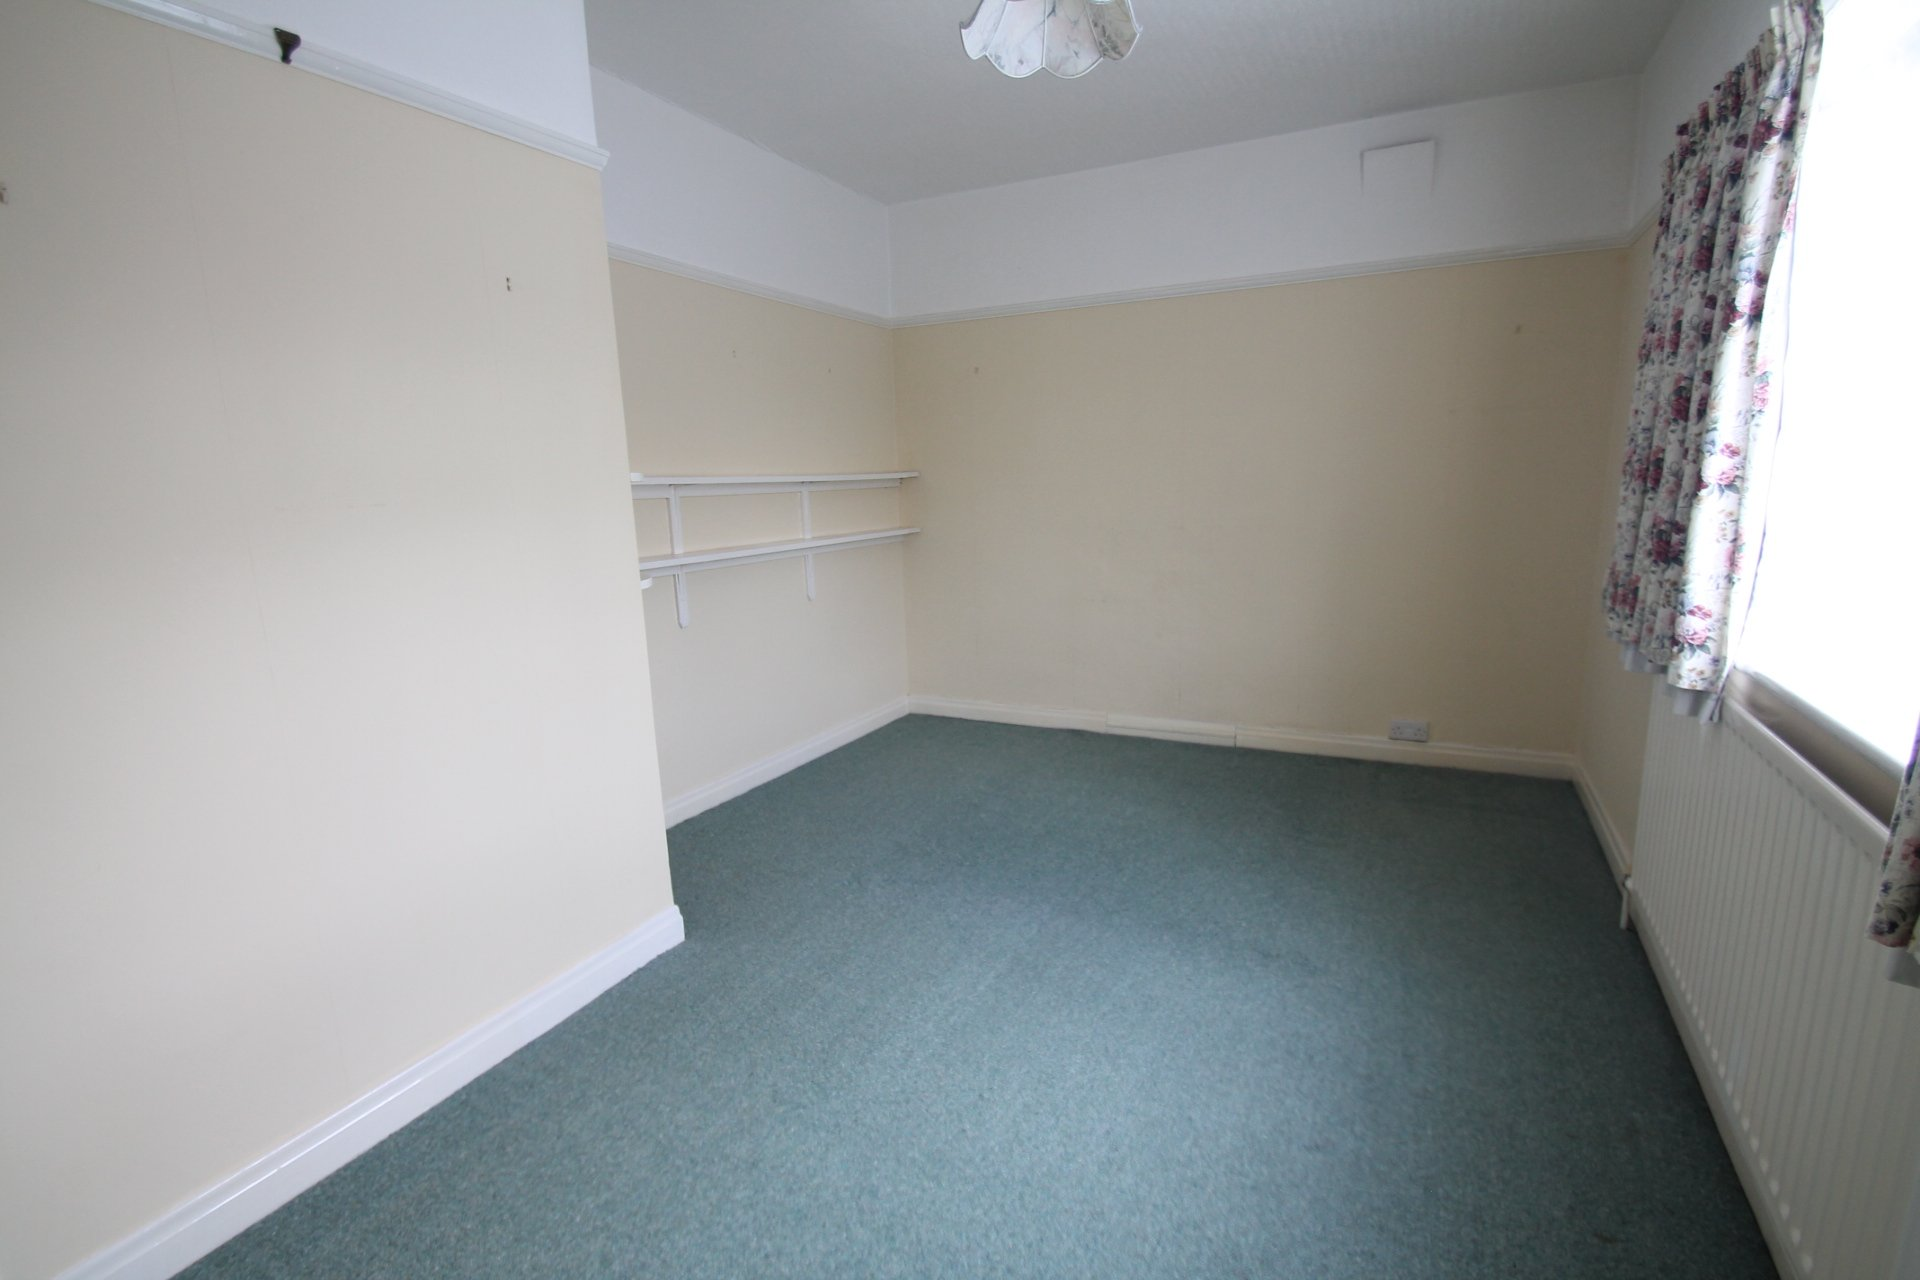 Bedroom link detached house for sale in solihull